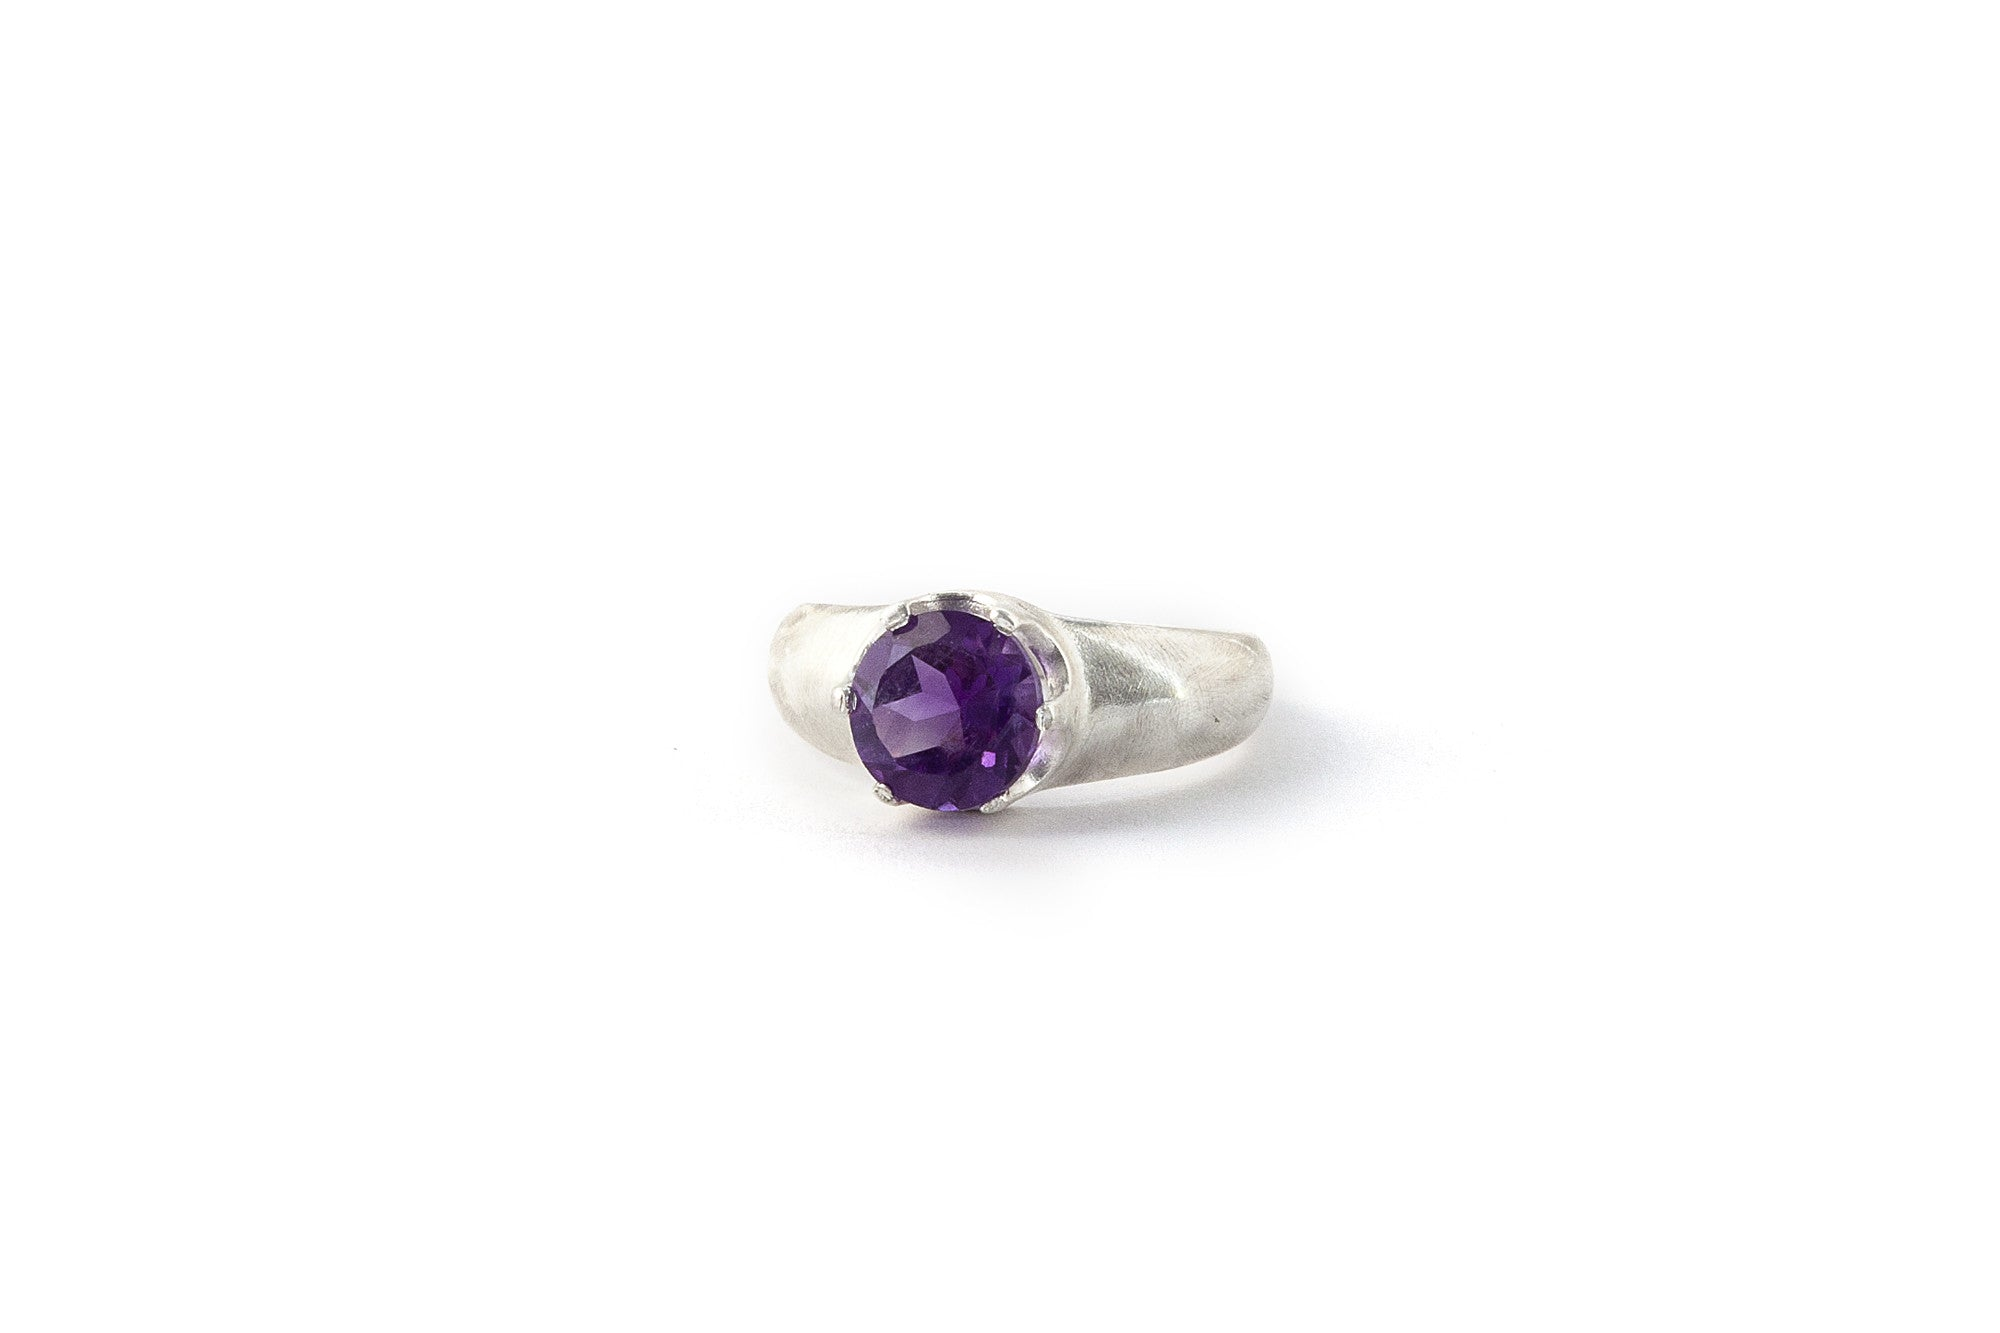 Medium Crown Ring - Amethyst (Purple)